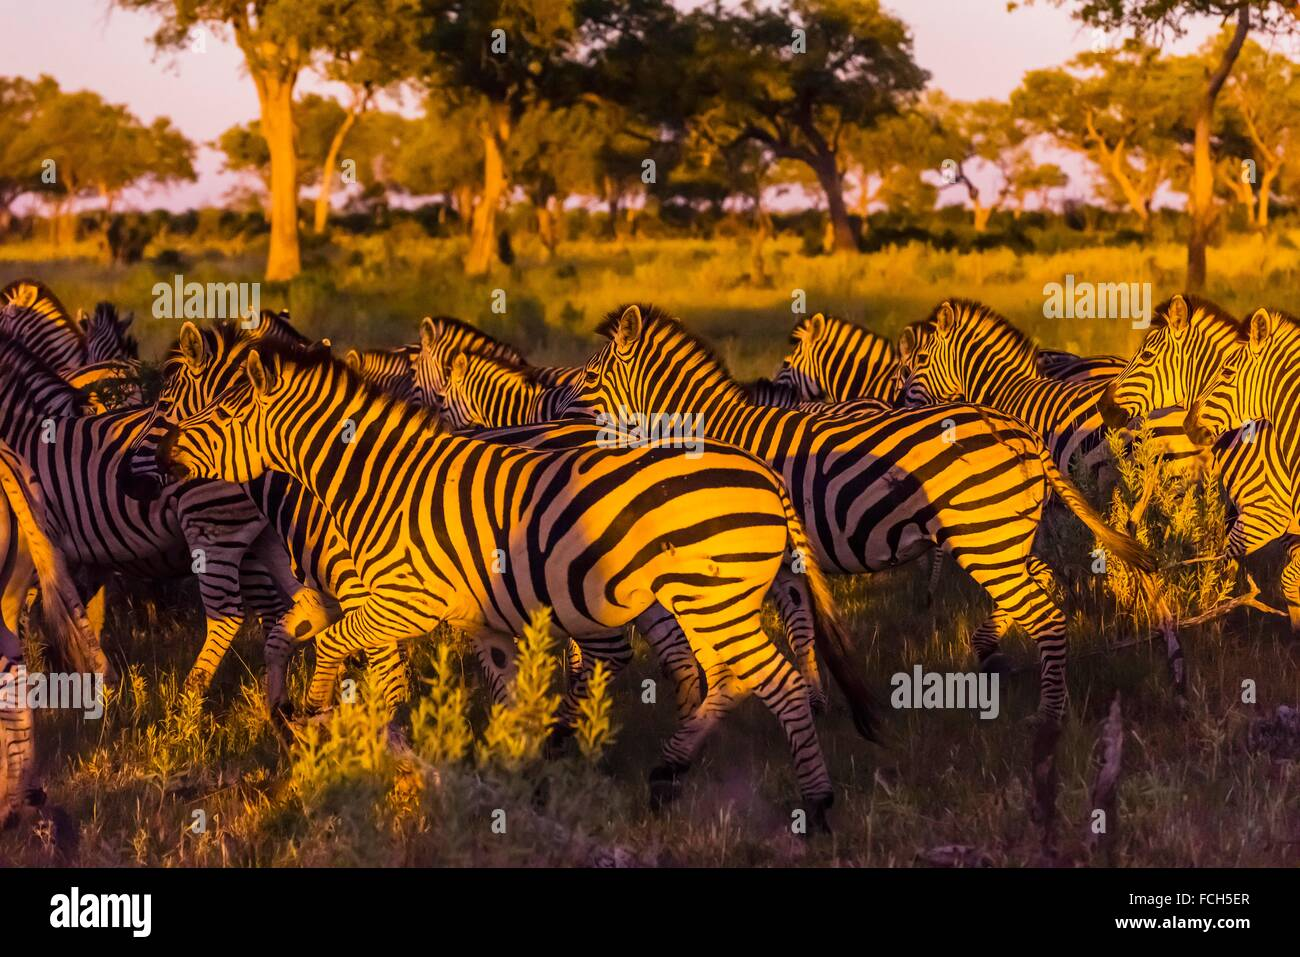 Herd of zebras, Kwando Concession, Linyanti Marshes, Botswana. Stock Photo